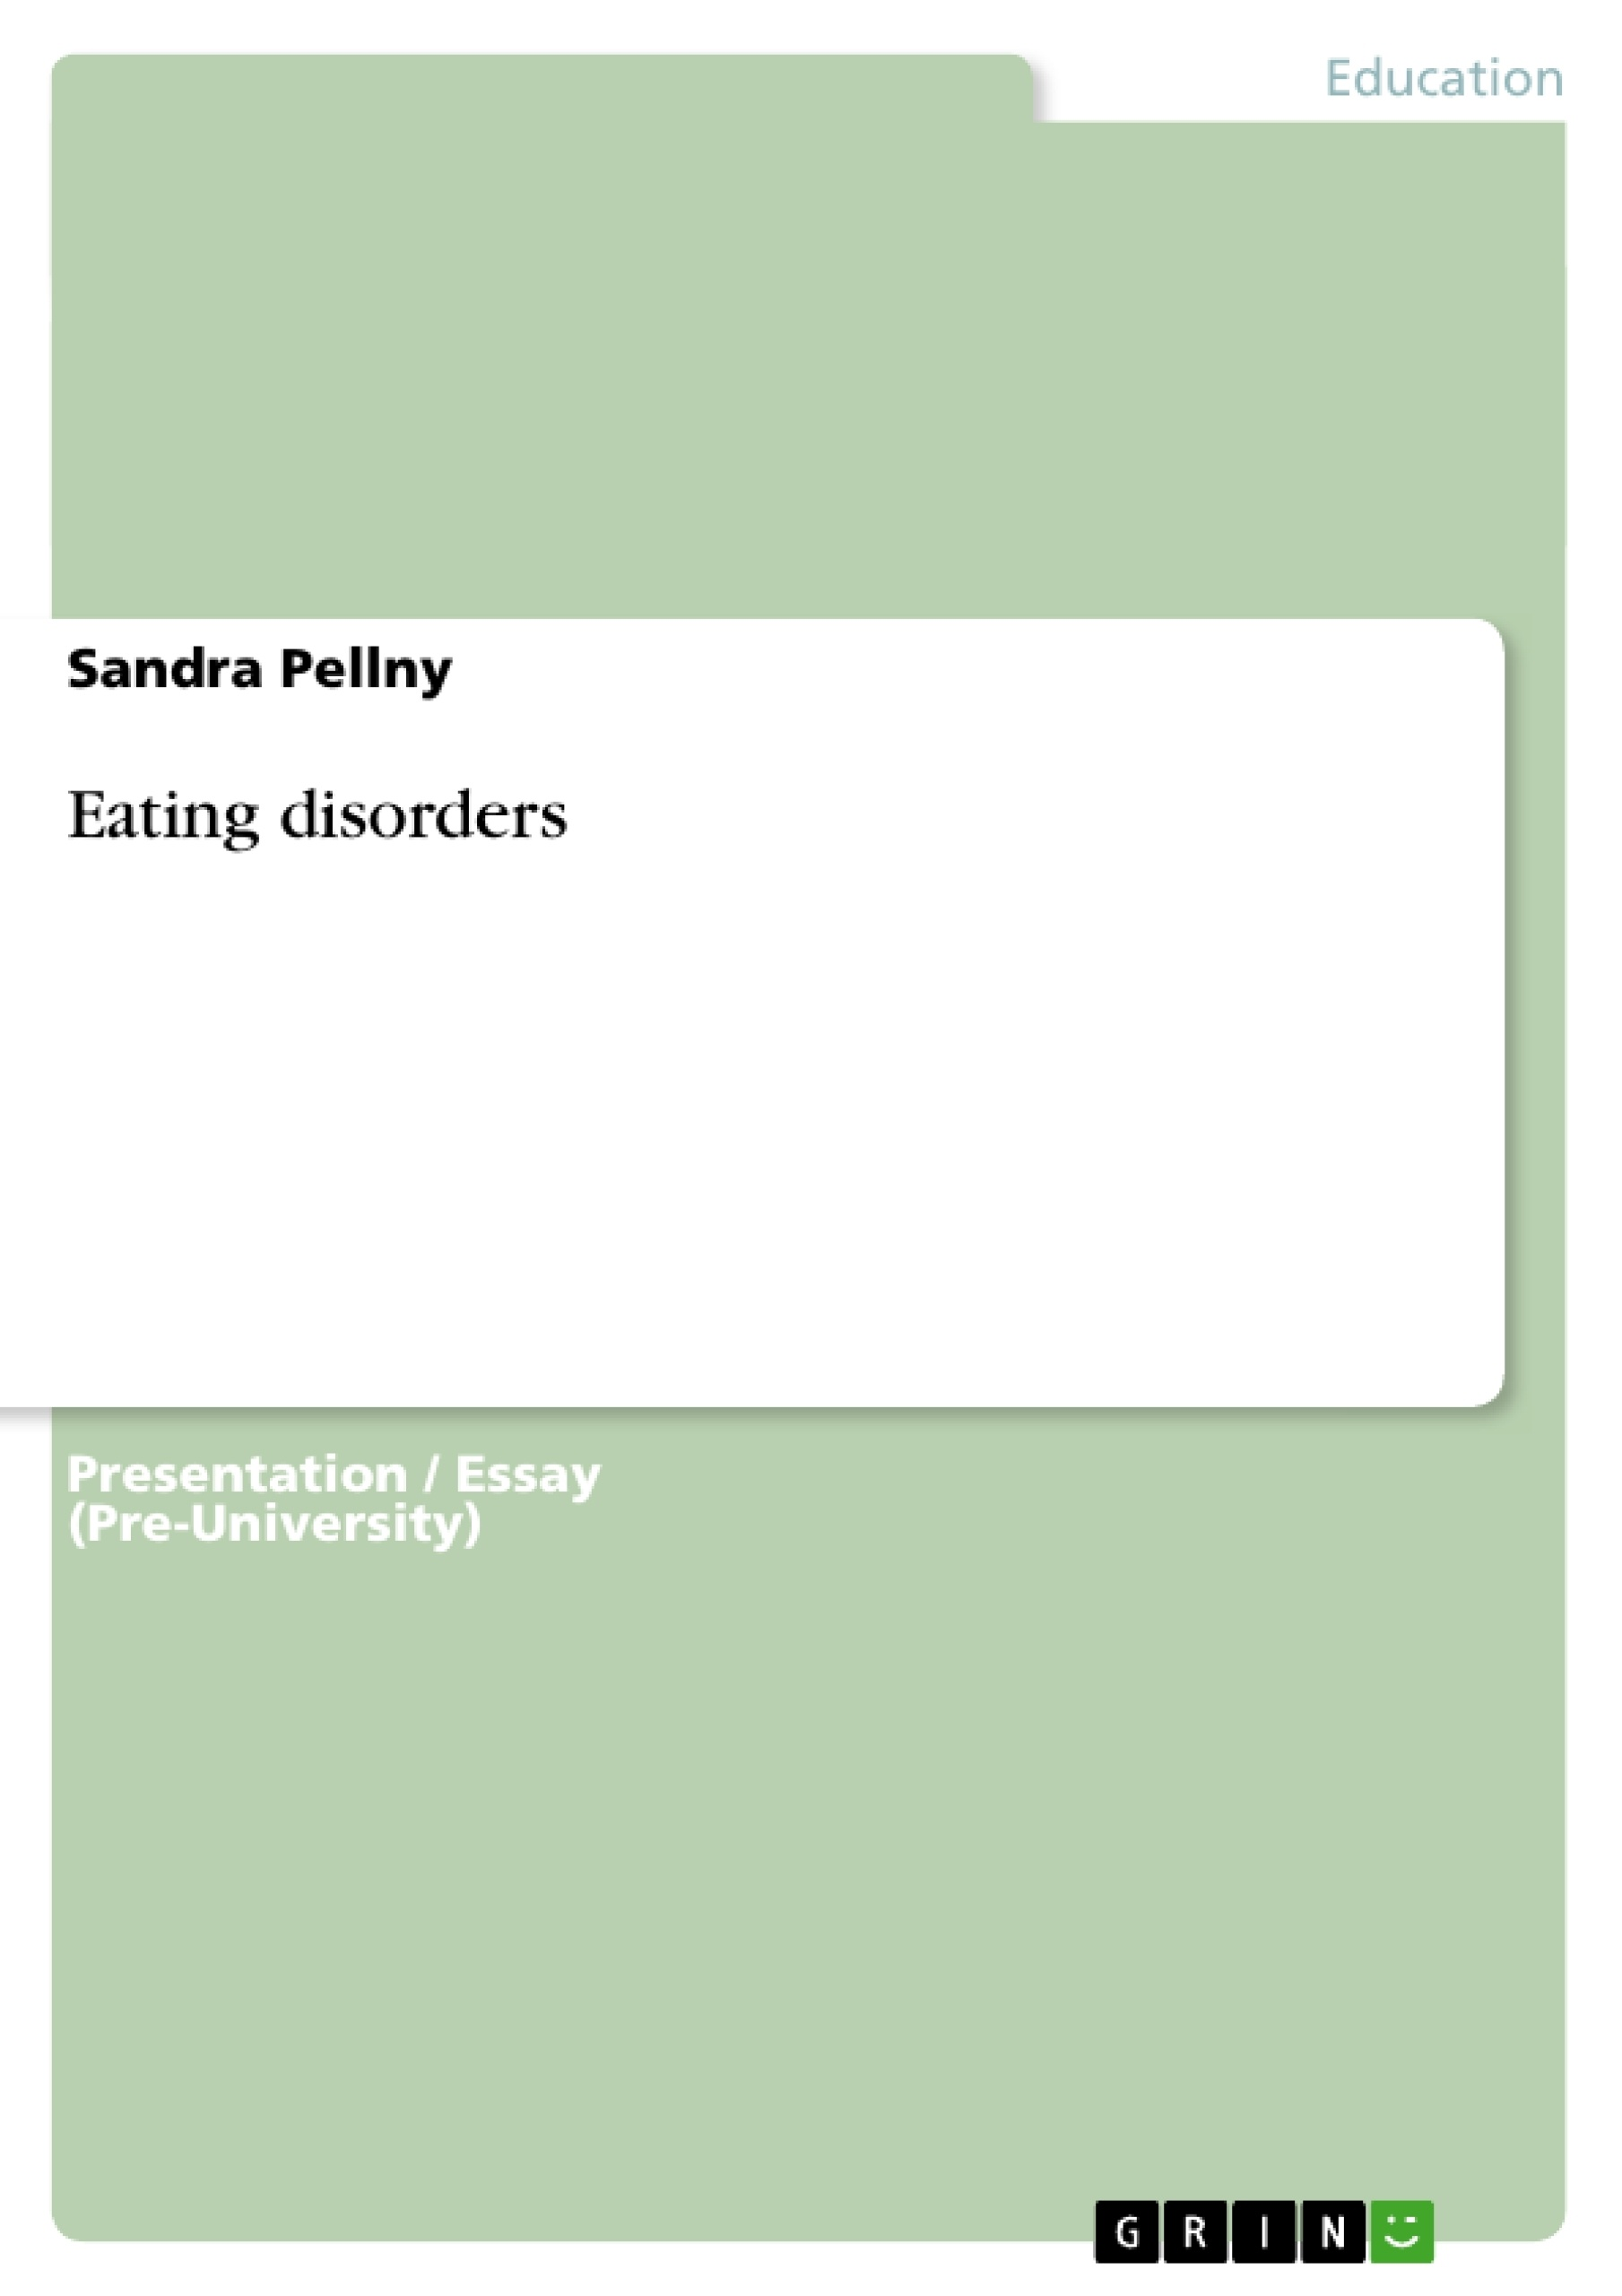 Title: Eating disorders